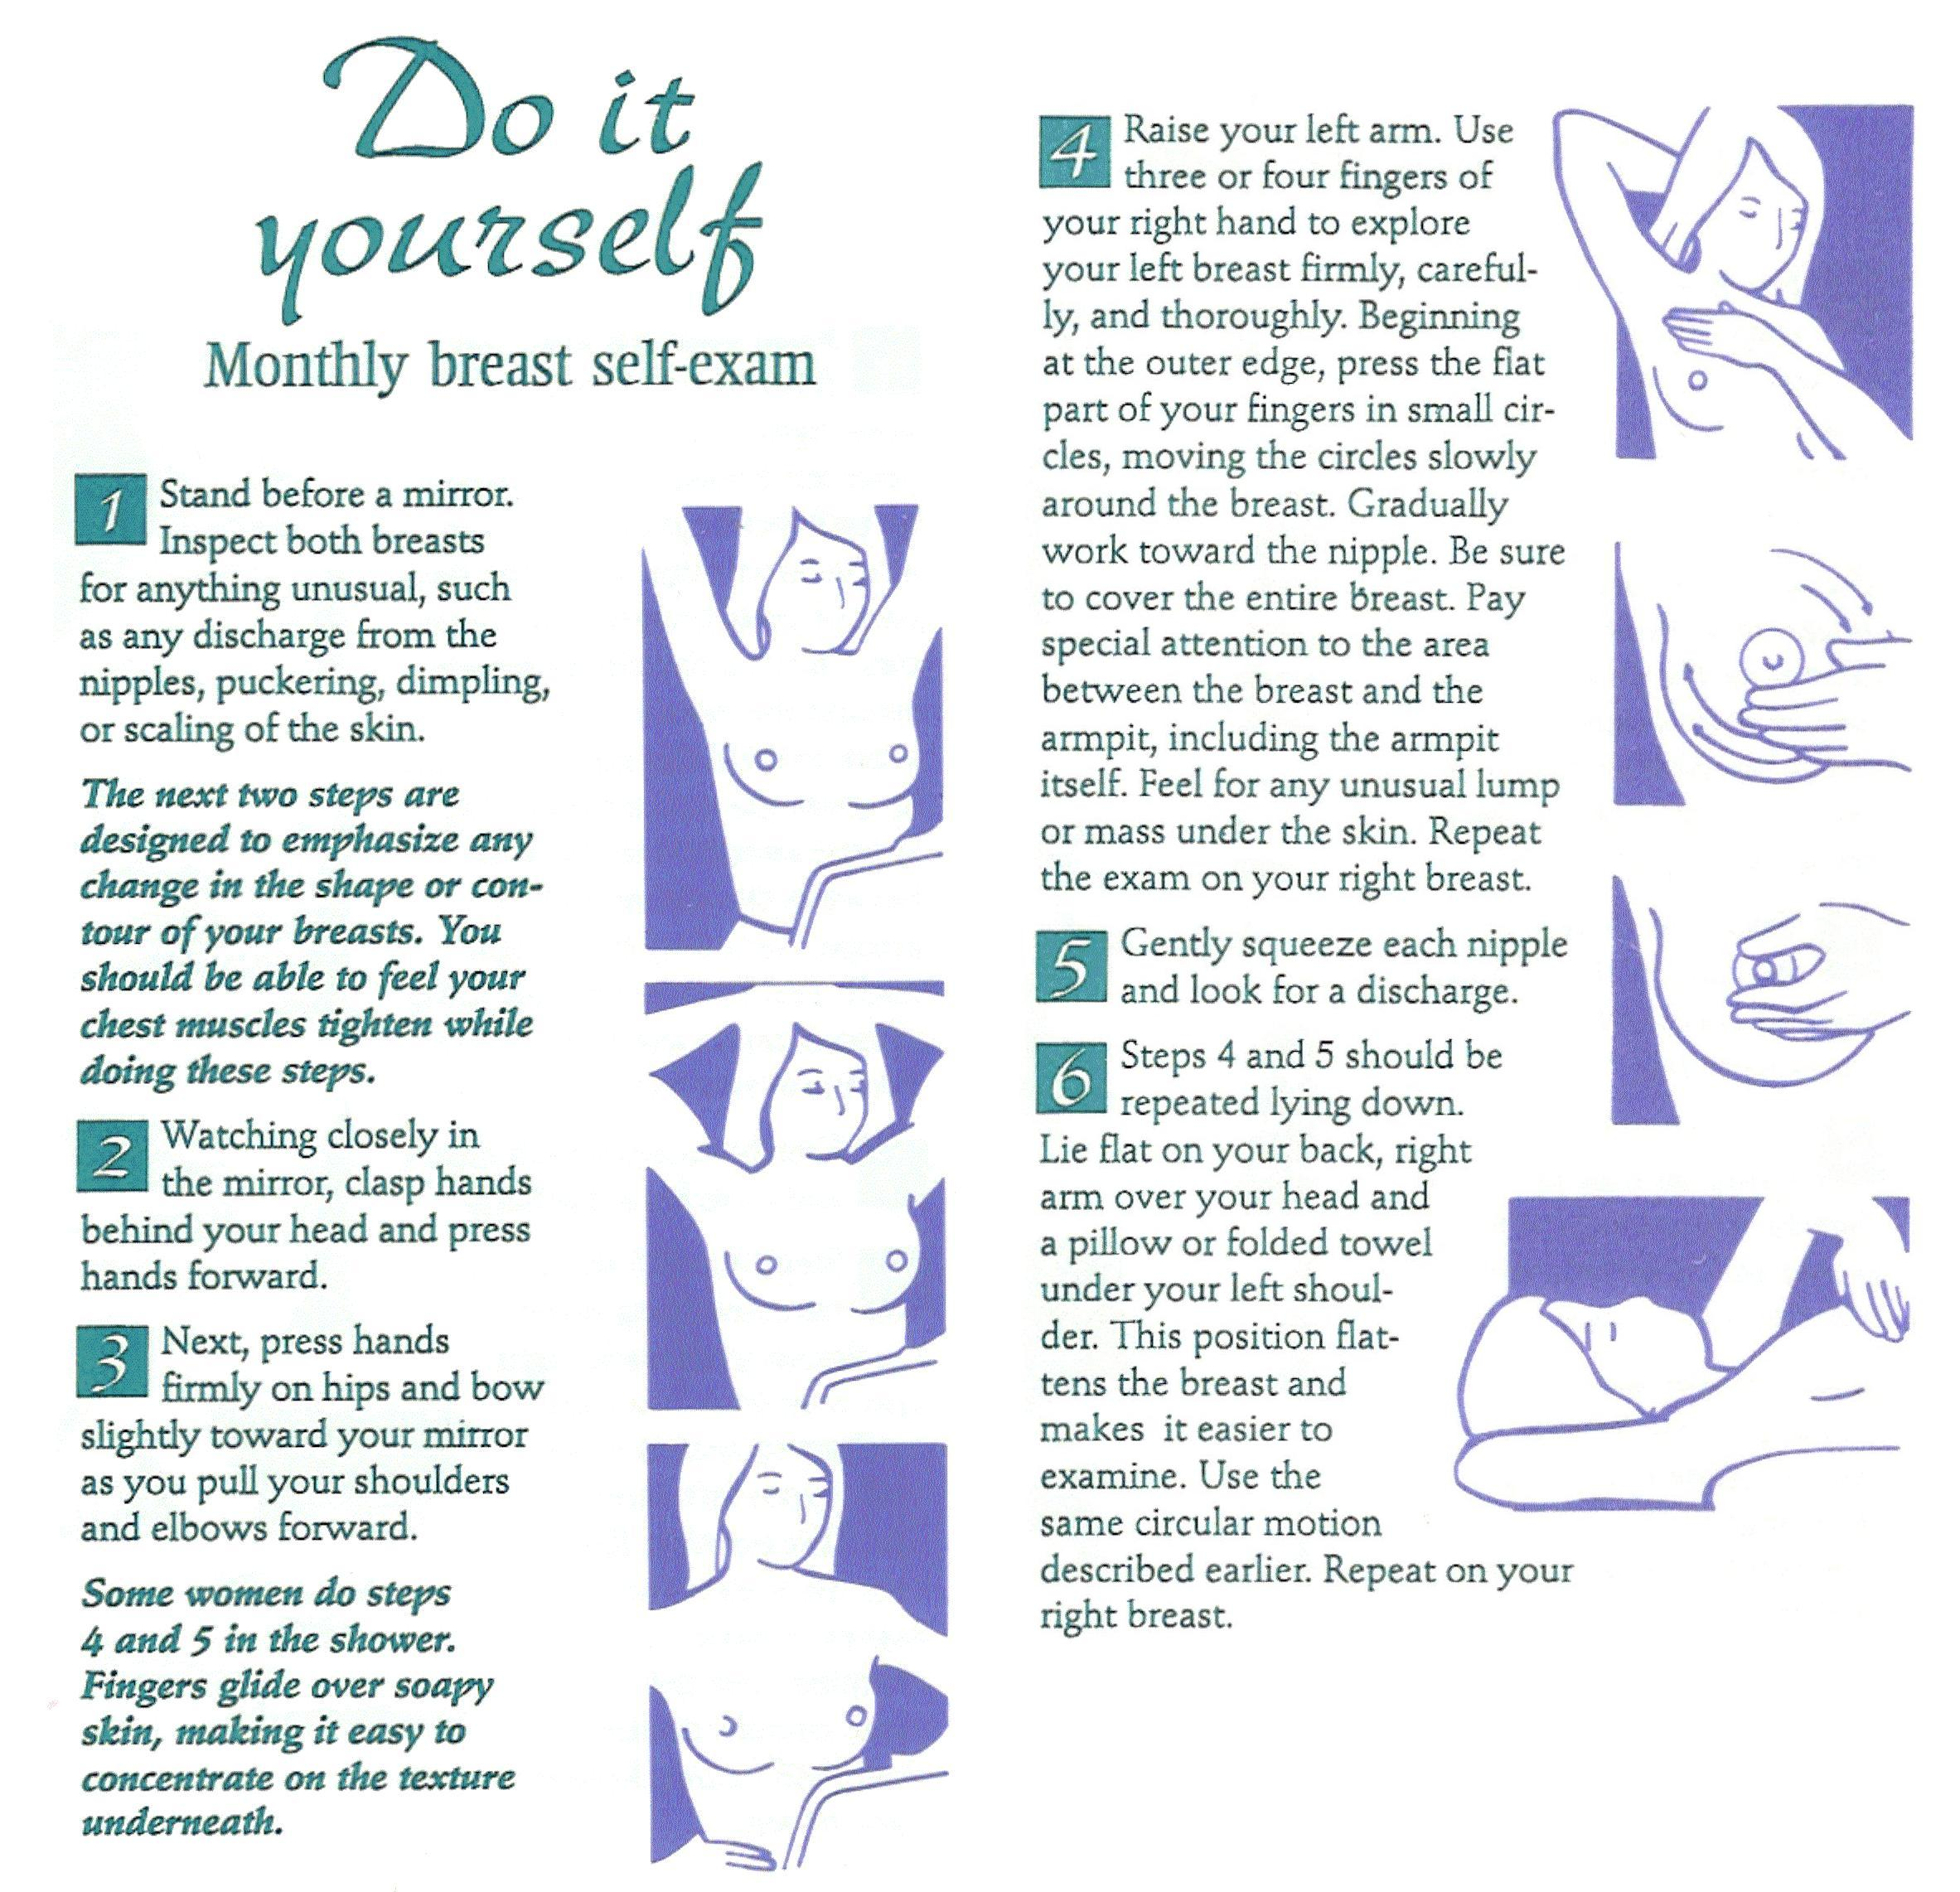 Are you doing your monthly breast self-exam?